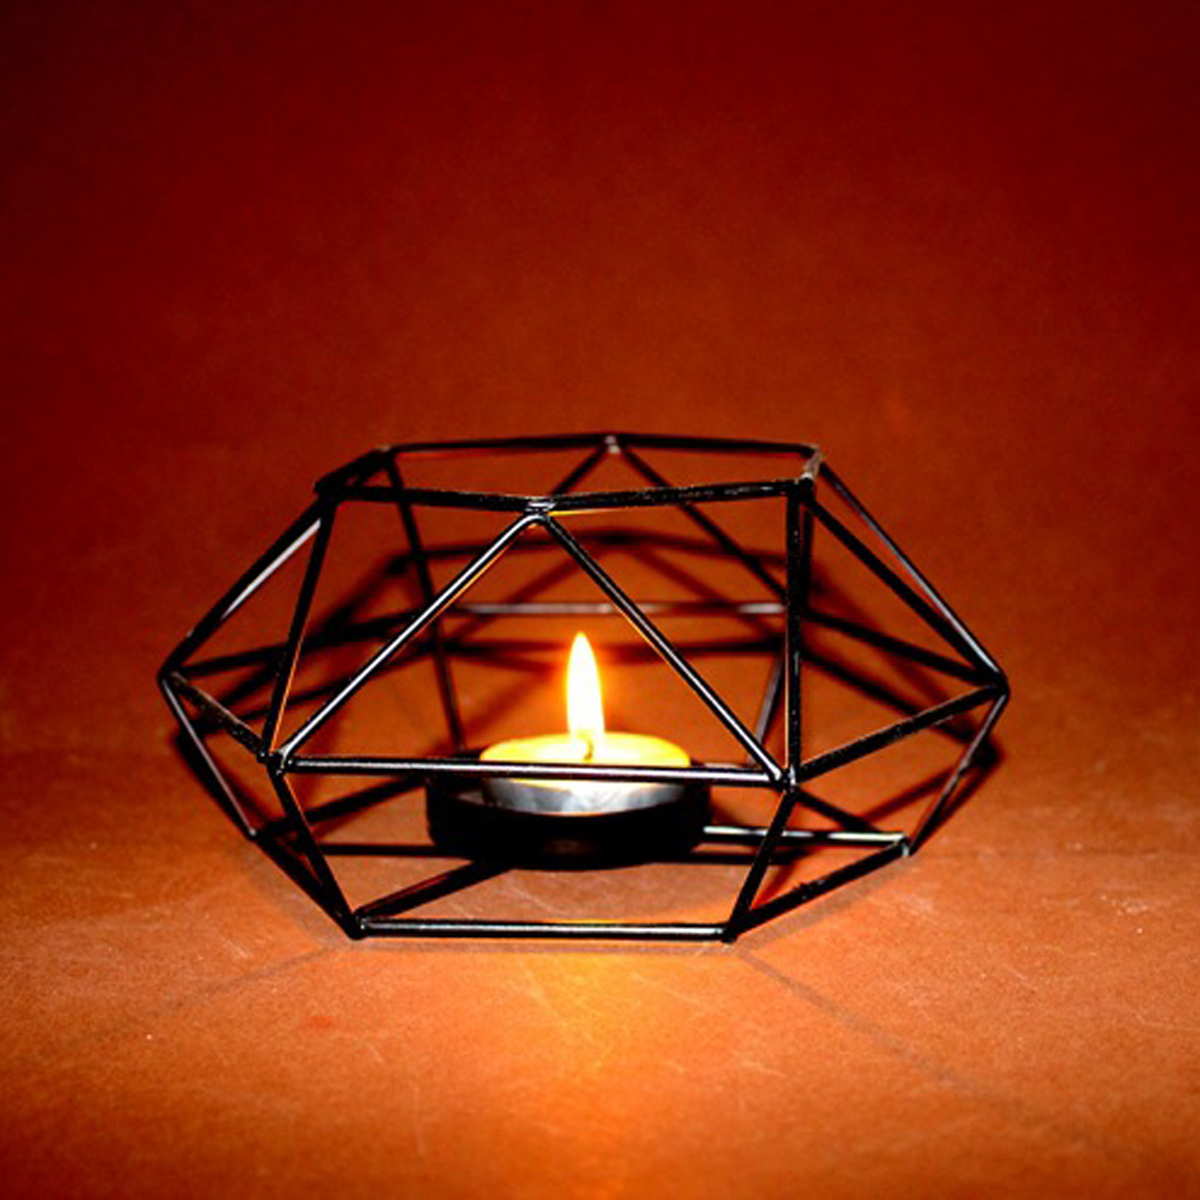 Iron Oil Burner Candlestick Candle Holder Aromatherapy Oil Lamp Decorations Creative Gift